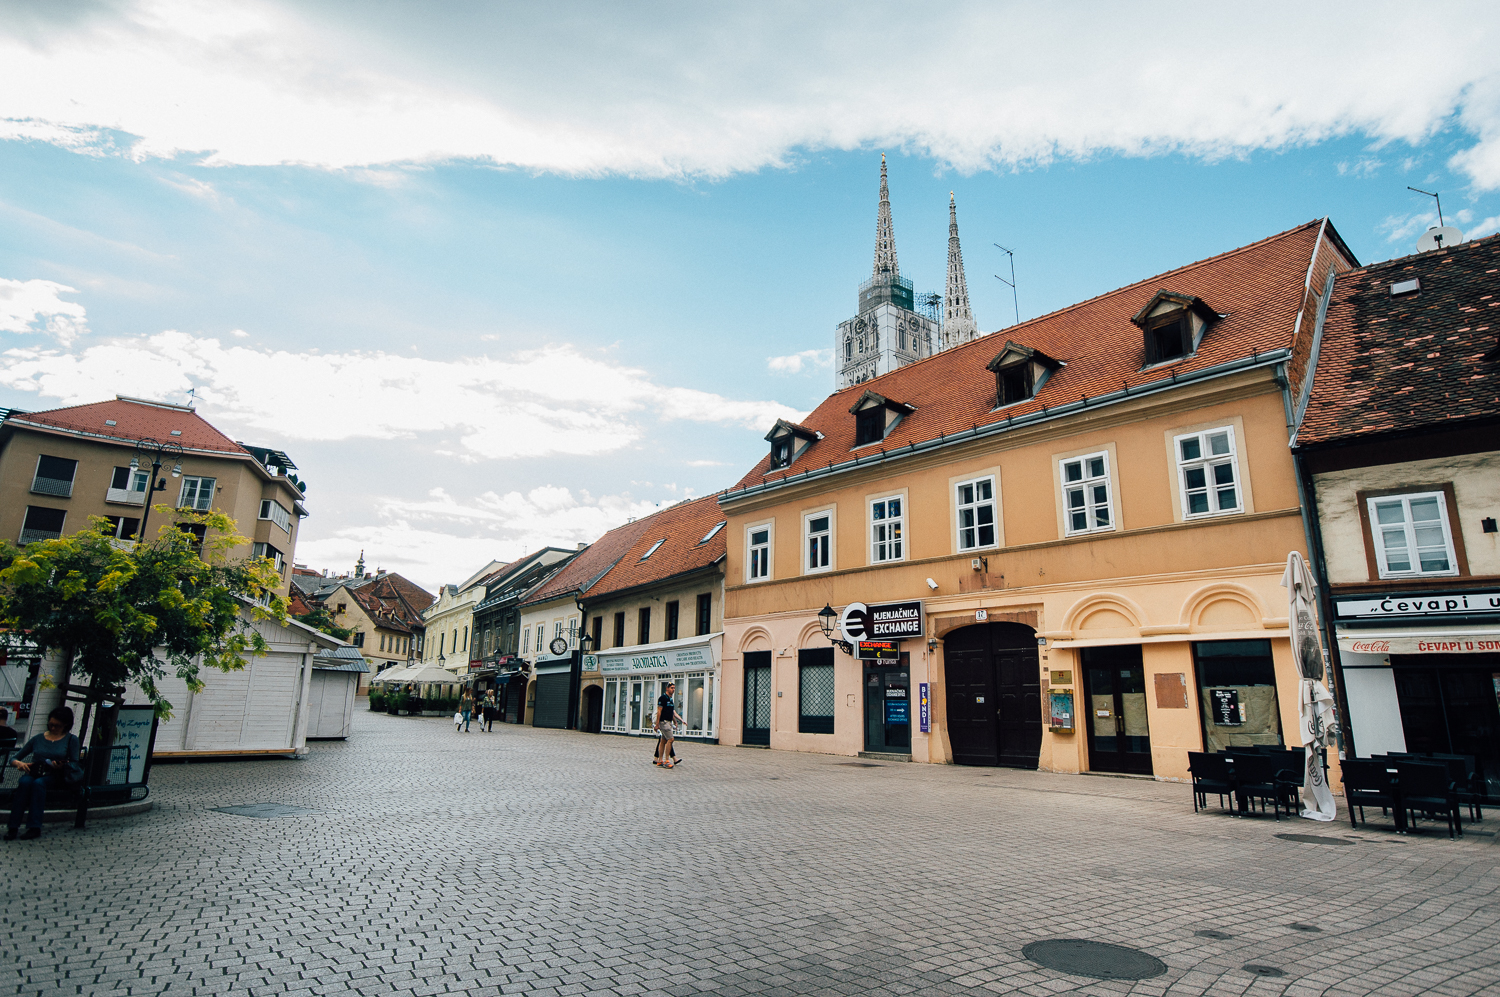 Typical architecture and streets of Zagreb (you can see the tall Cathedral).